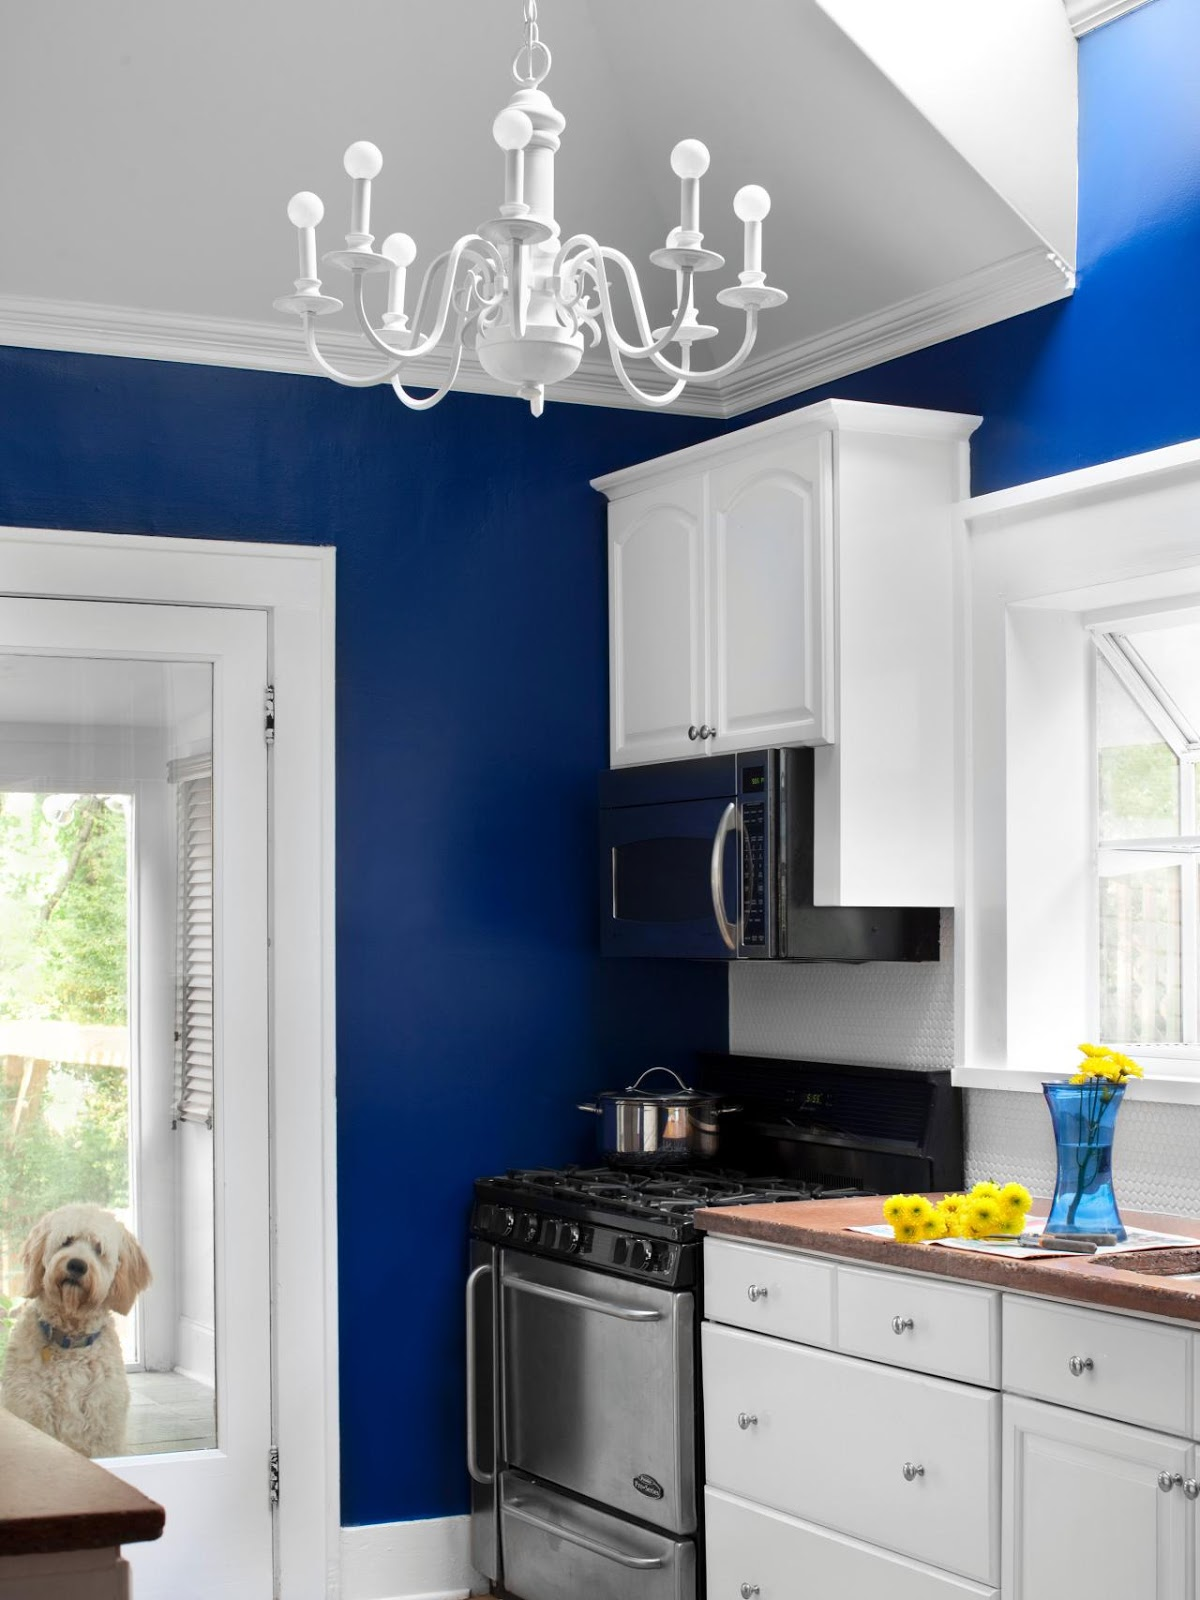 Blue Ribbon Bakery Kitchen Blue Kitchen Walls Youll Feel More Comfortable When Cooking